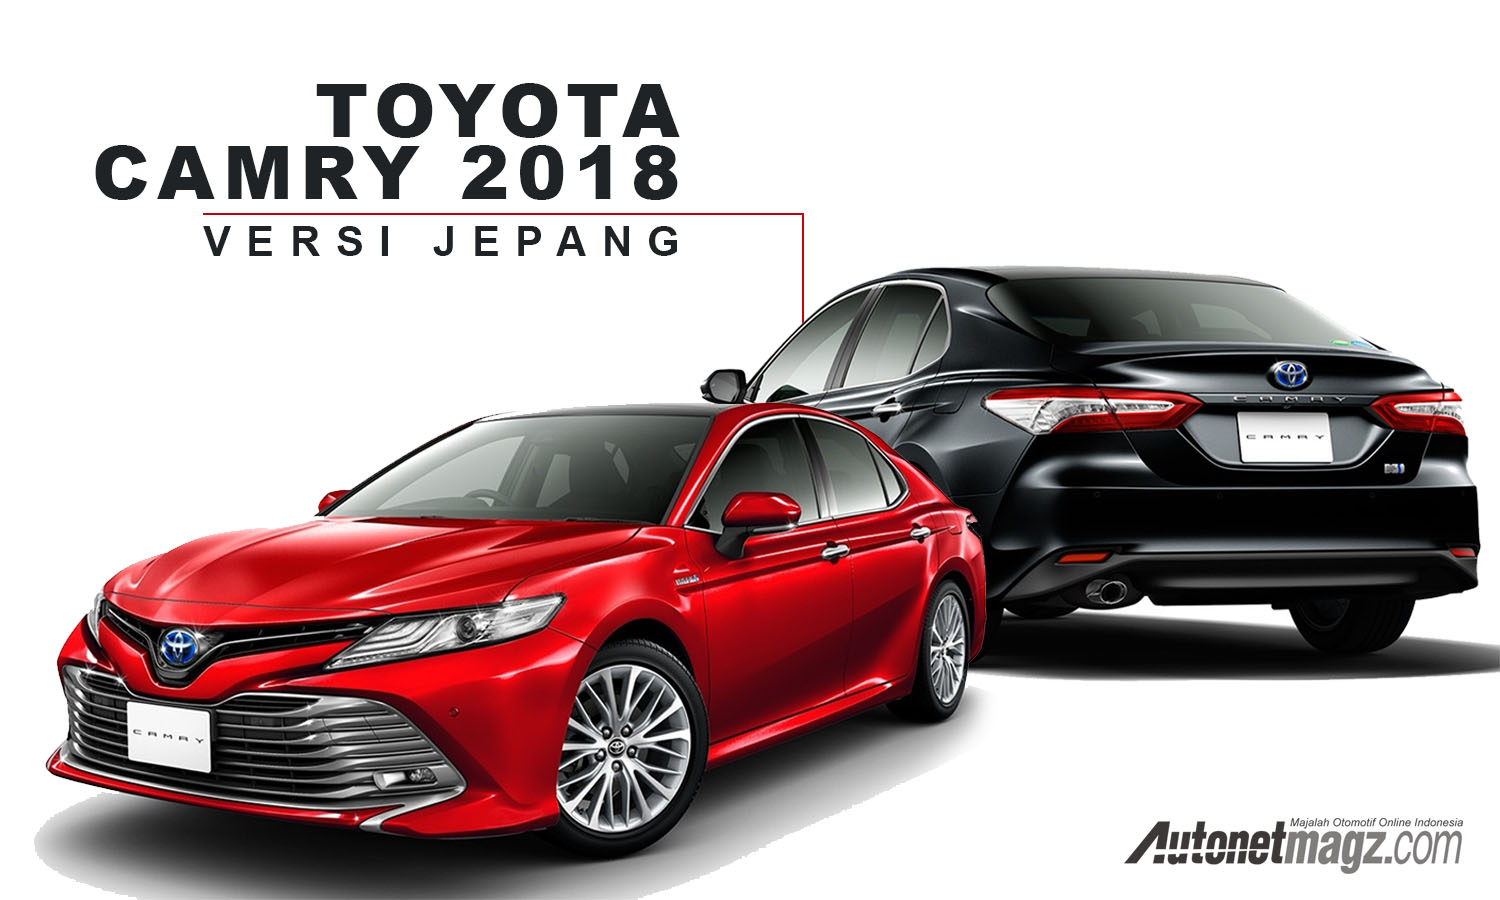 all new camry 2017 indonesia body kit yaris trd sportivo cover  autonetmagz review mobil dan motor baru